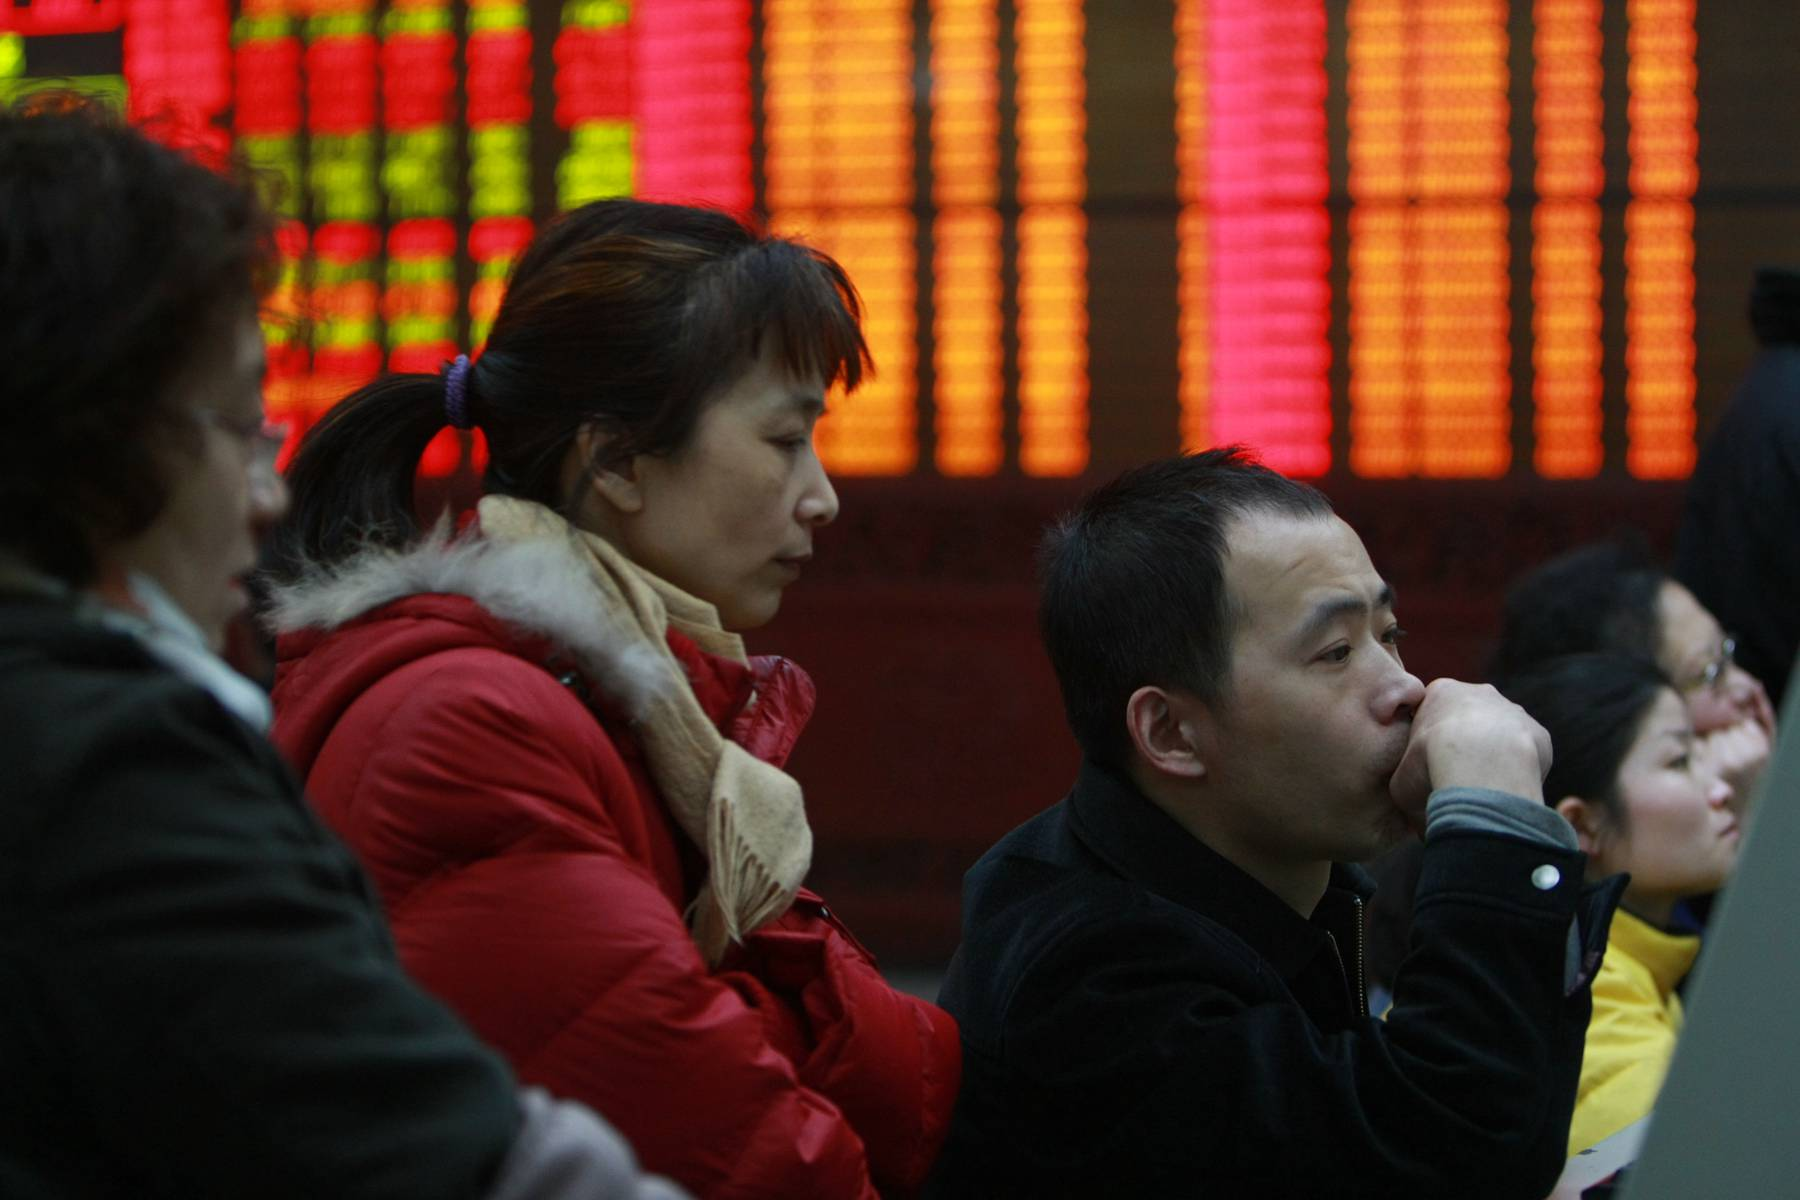 Foreign investment brings changes to China's A-share market